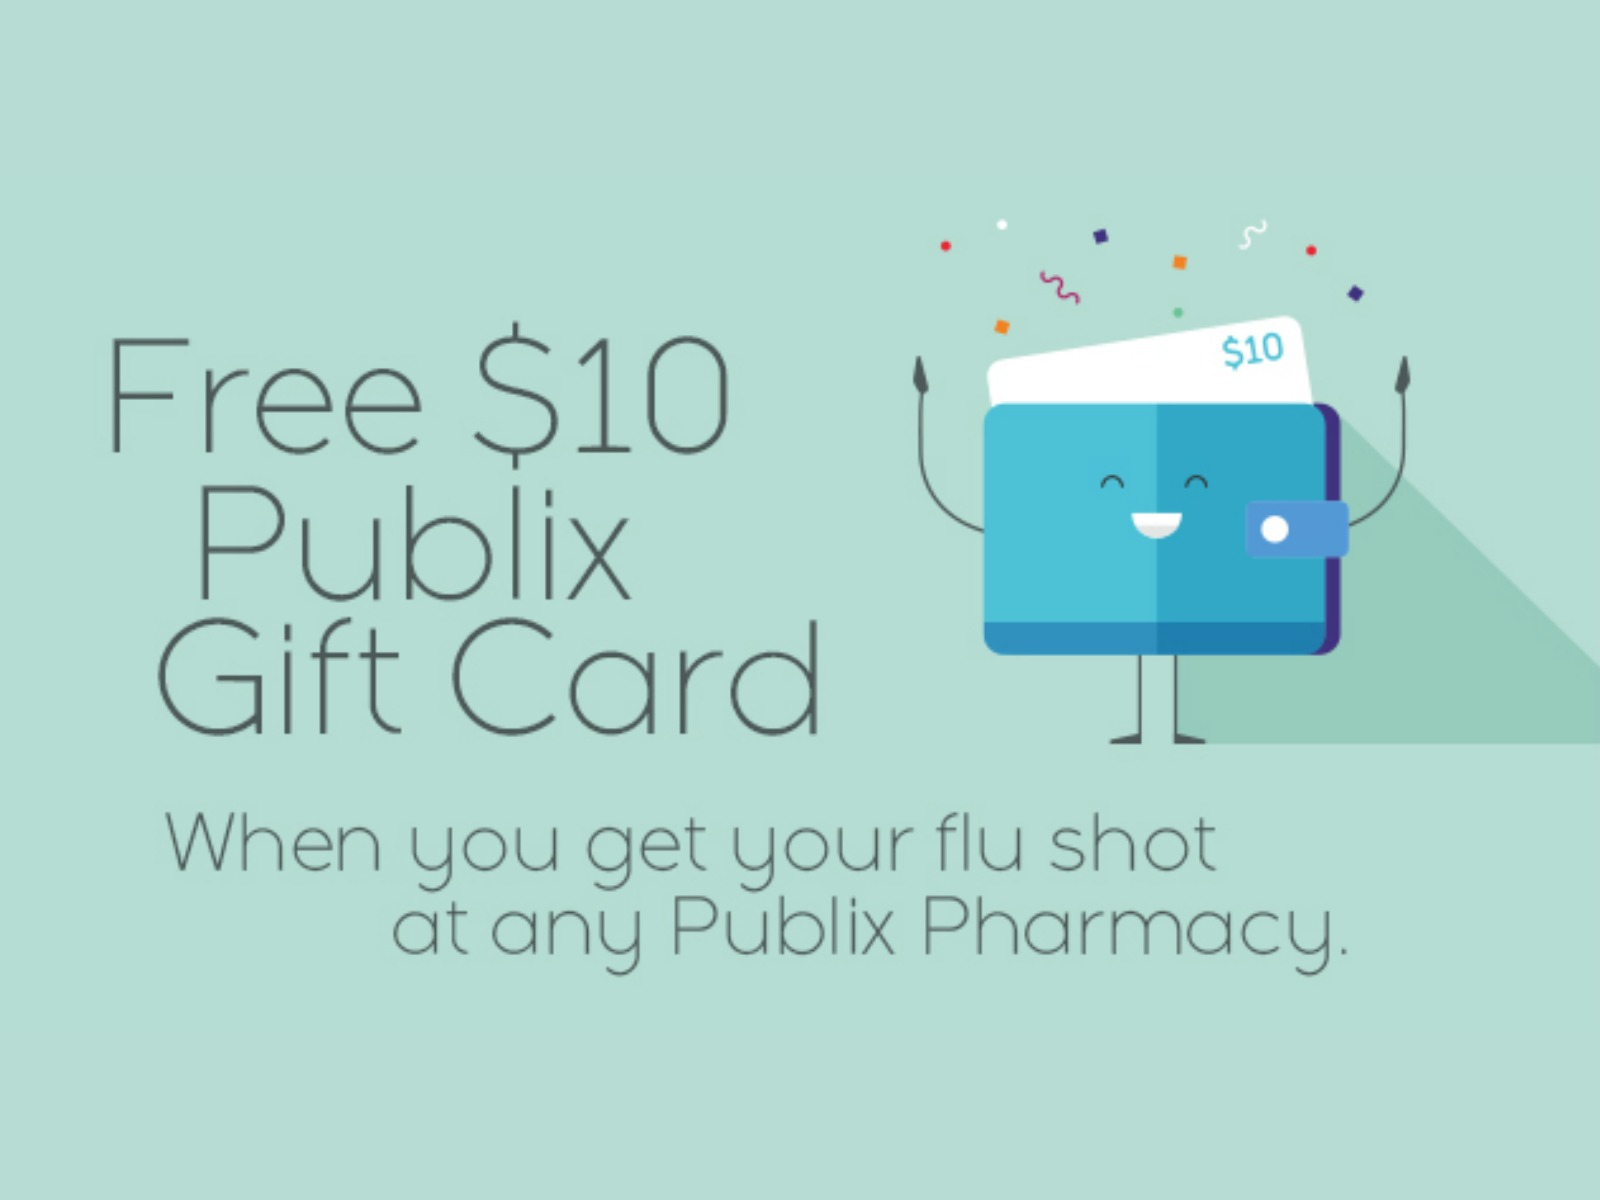 $10 Publix Gift Card With A Flu Shot From The Publix Pharmacy on I Heart Publix 1